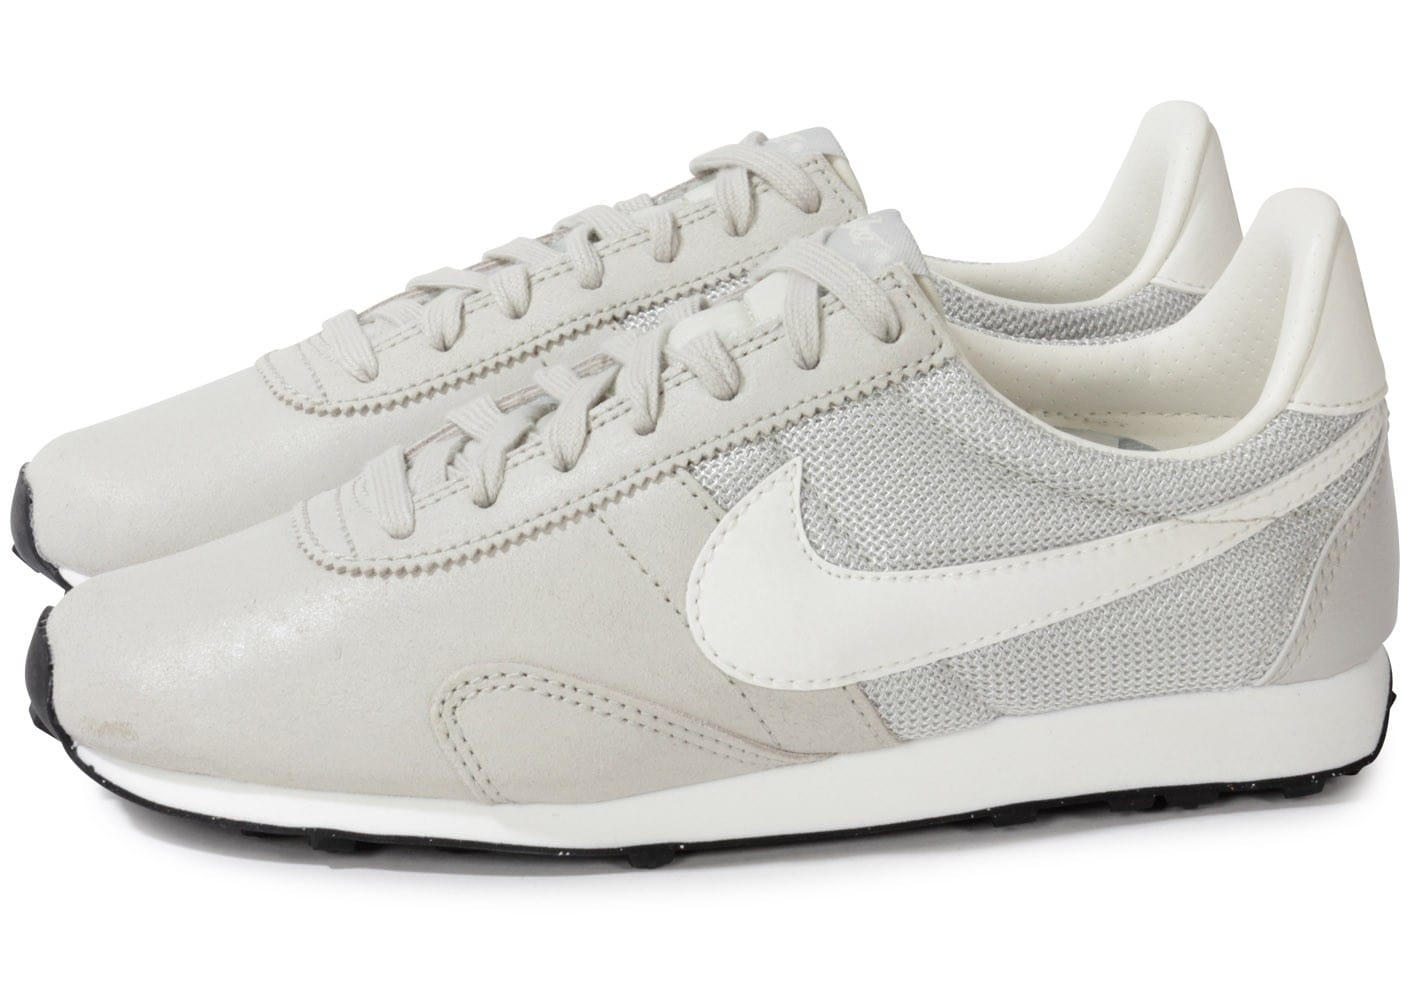 Nike Chaussures Pre Montreal Racer Bone Chaussures Nike Chaussures Chausport 7bbb53